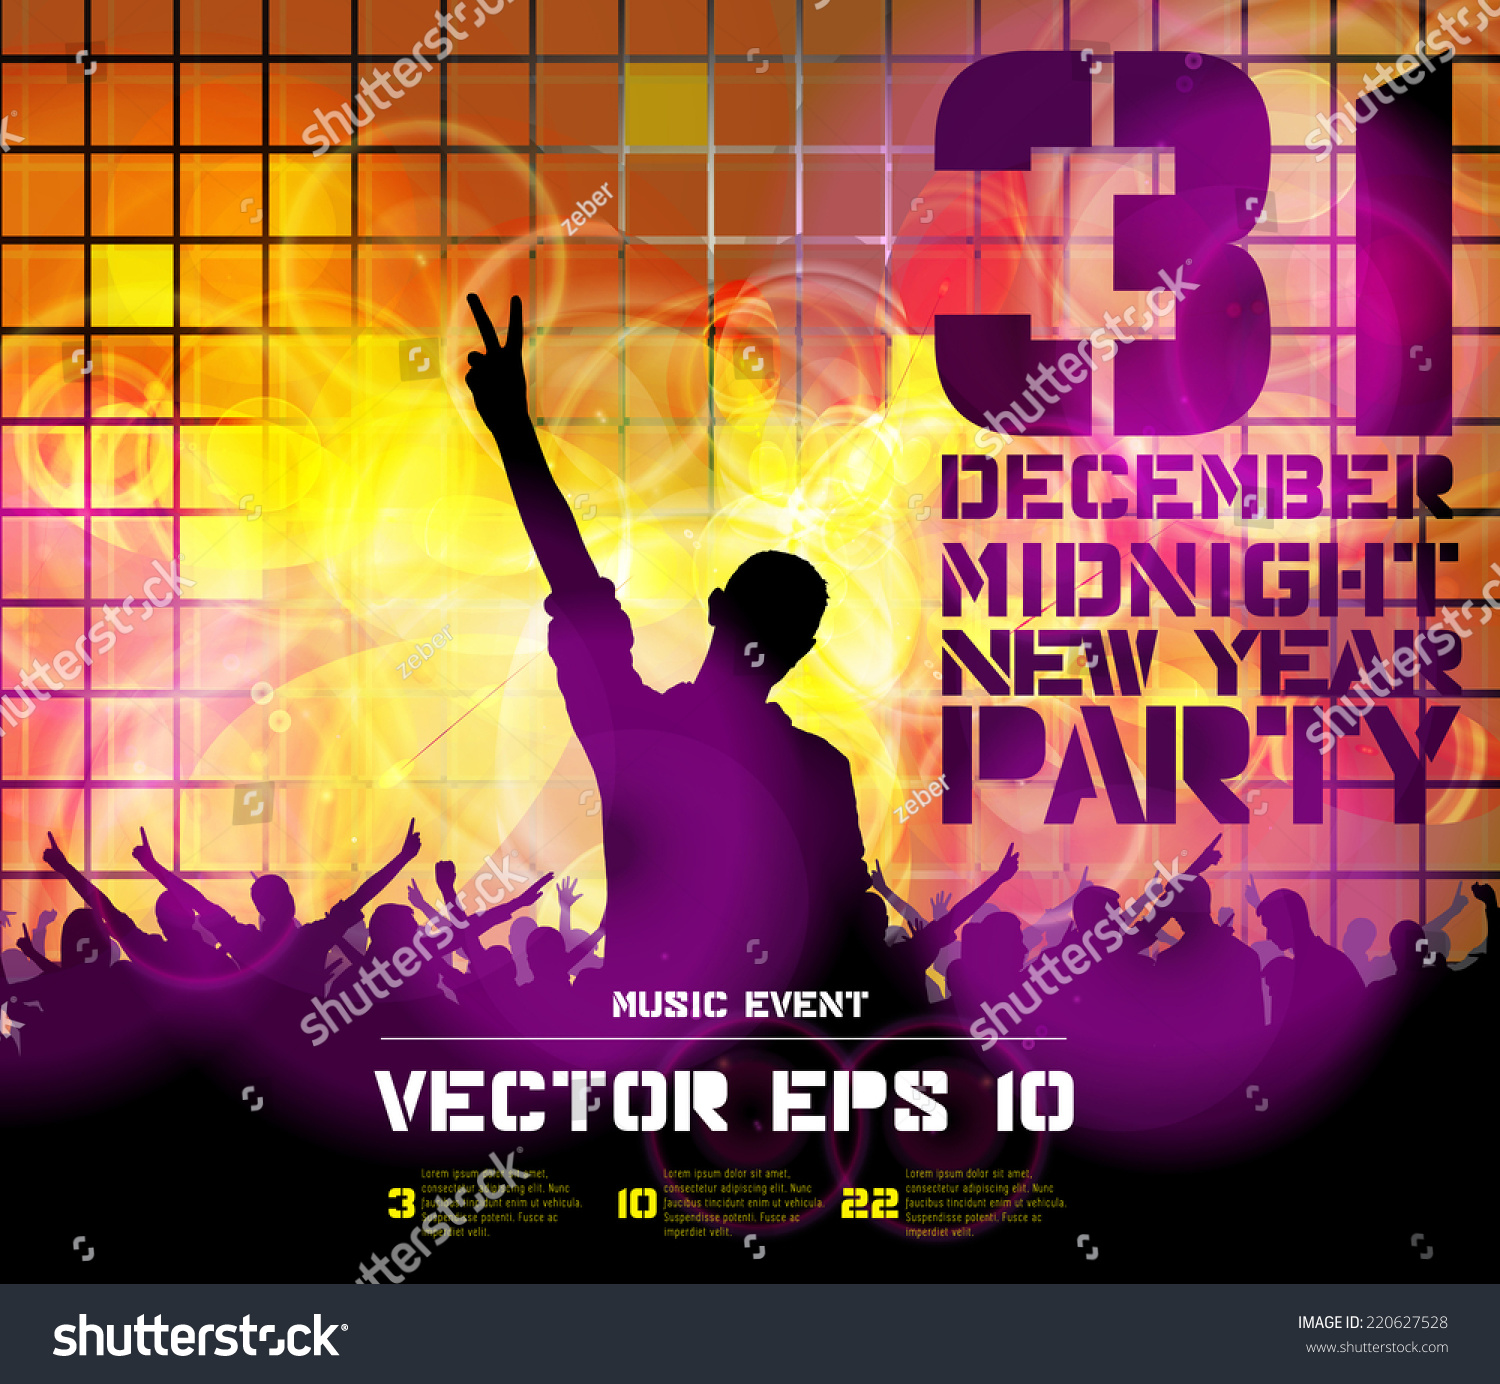 dancing people background for new year party event poster vector